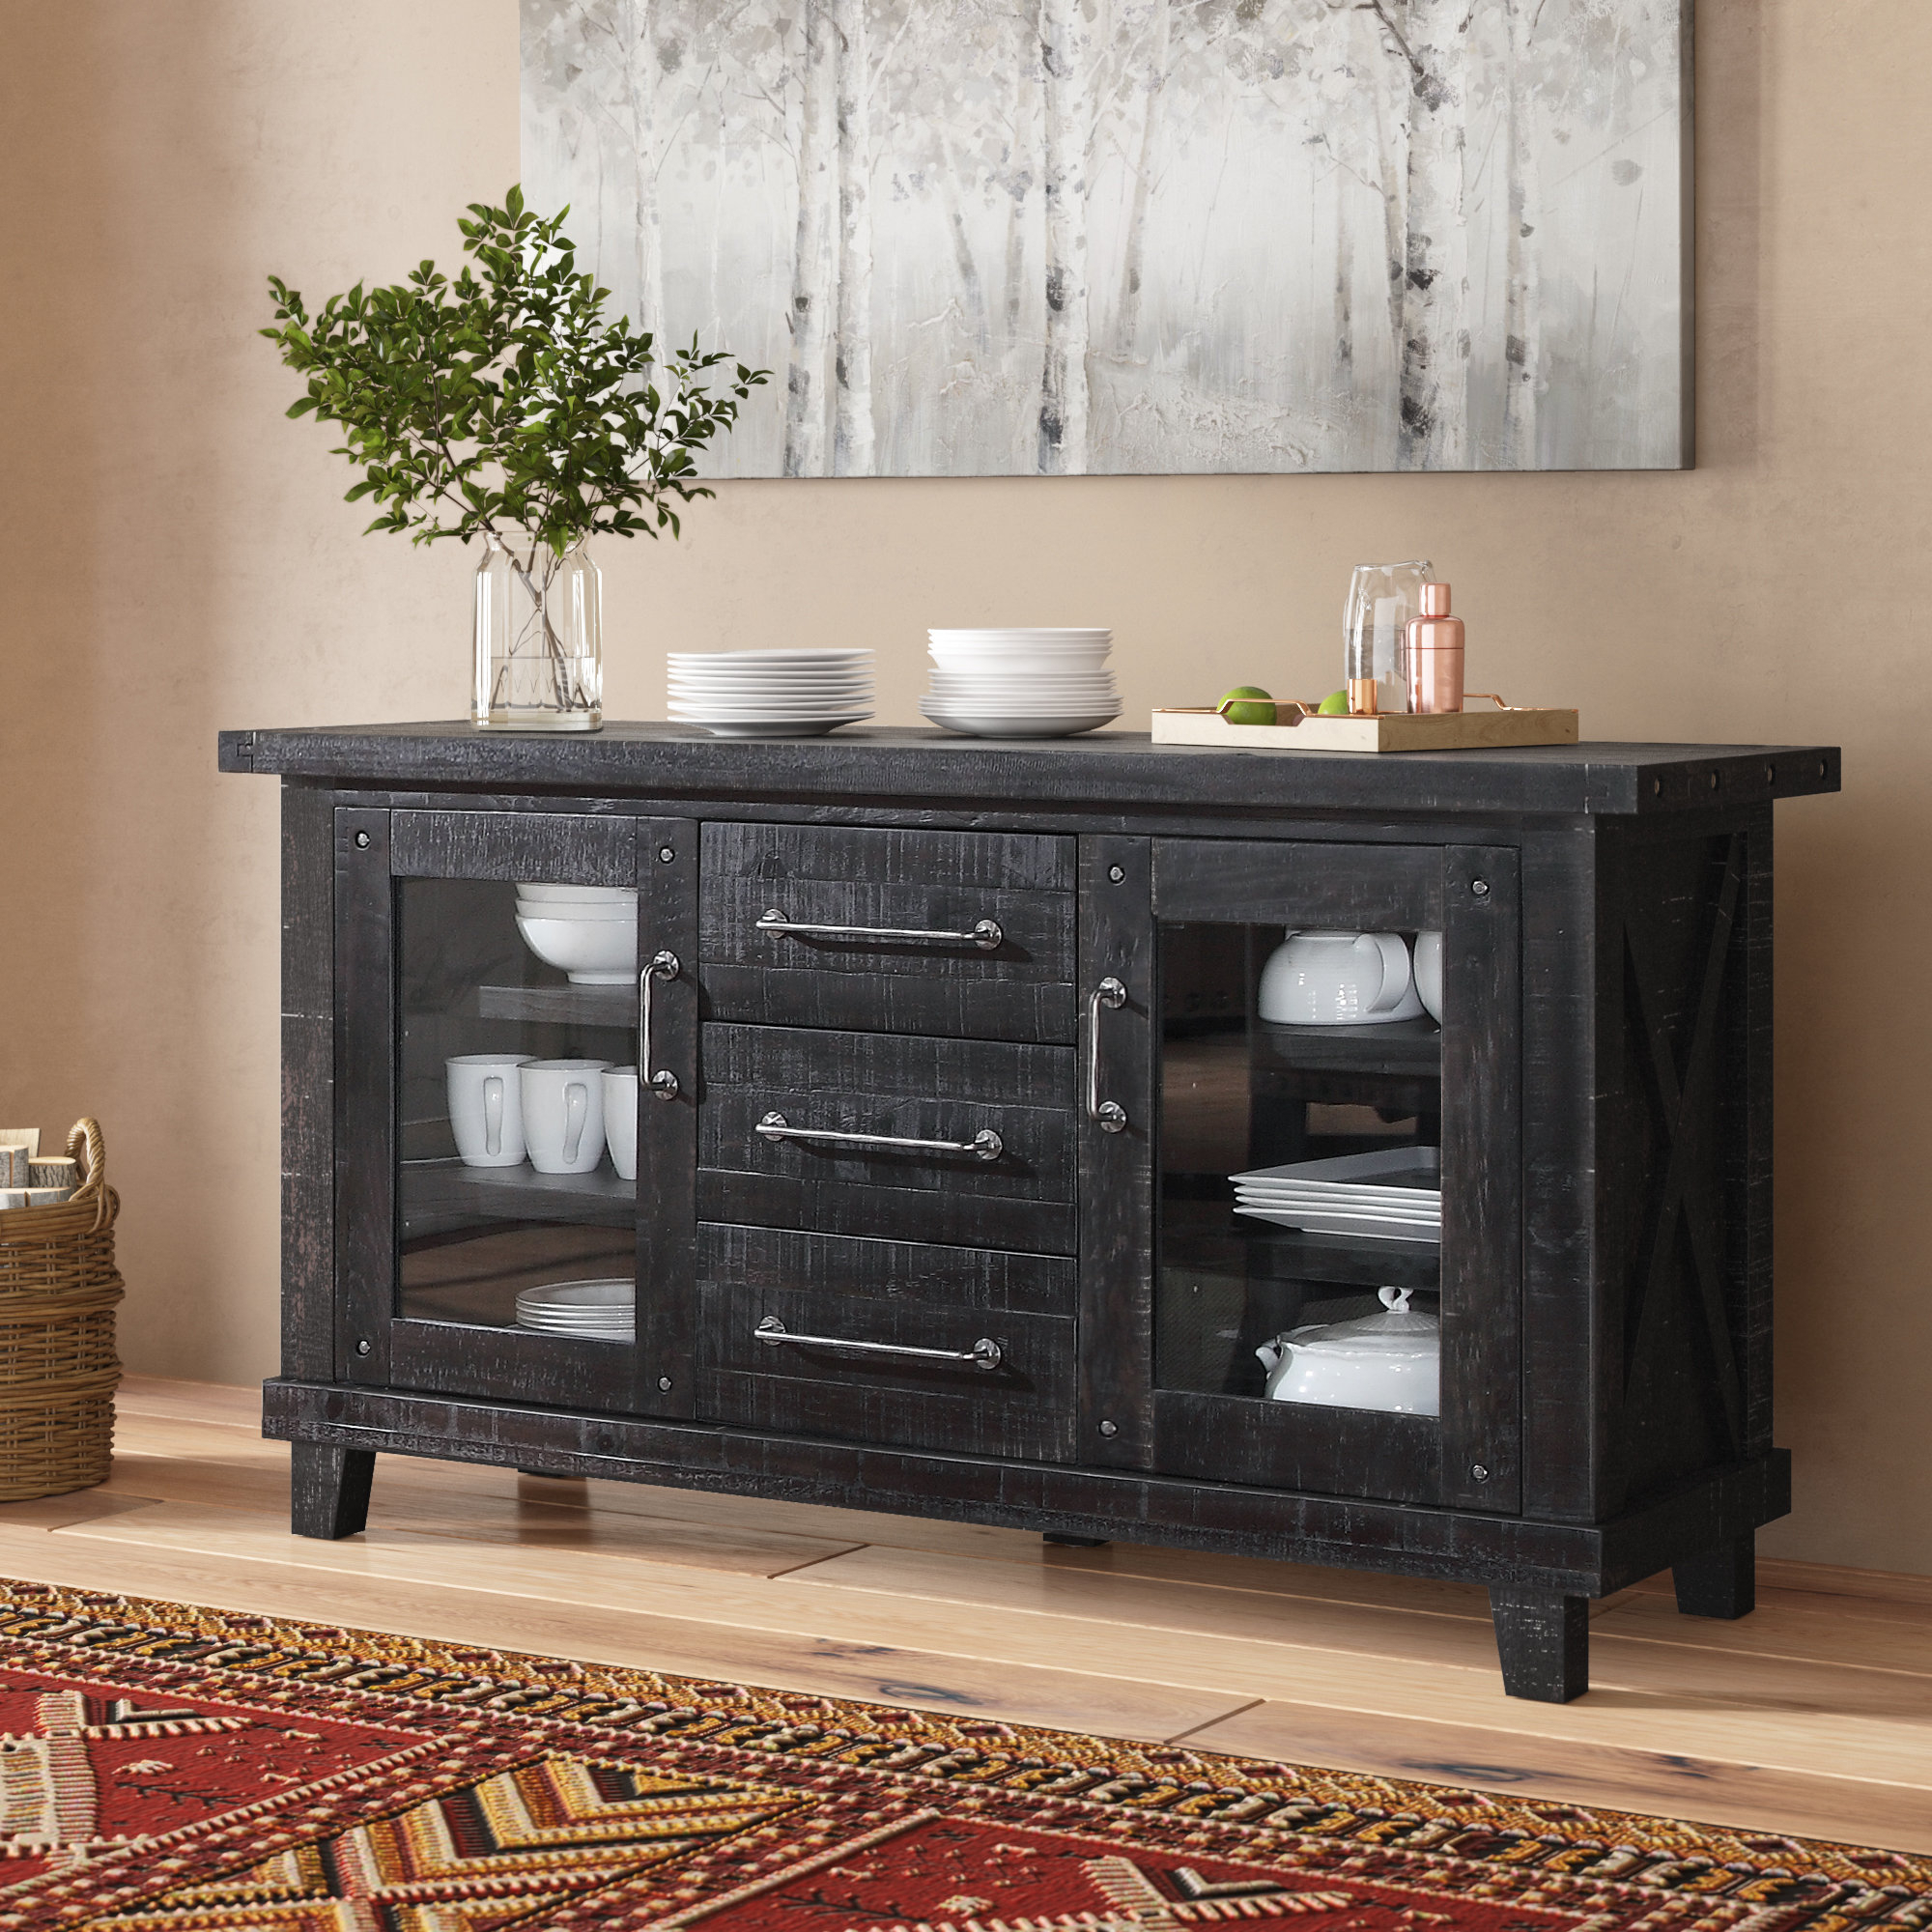 Trendy Chicoree Charlena Sideboards Intended For Cottage & Country Sideboard / Credenza Sideboards & Buffets (View 14 of 20)